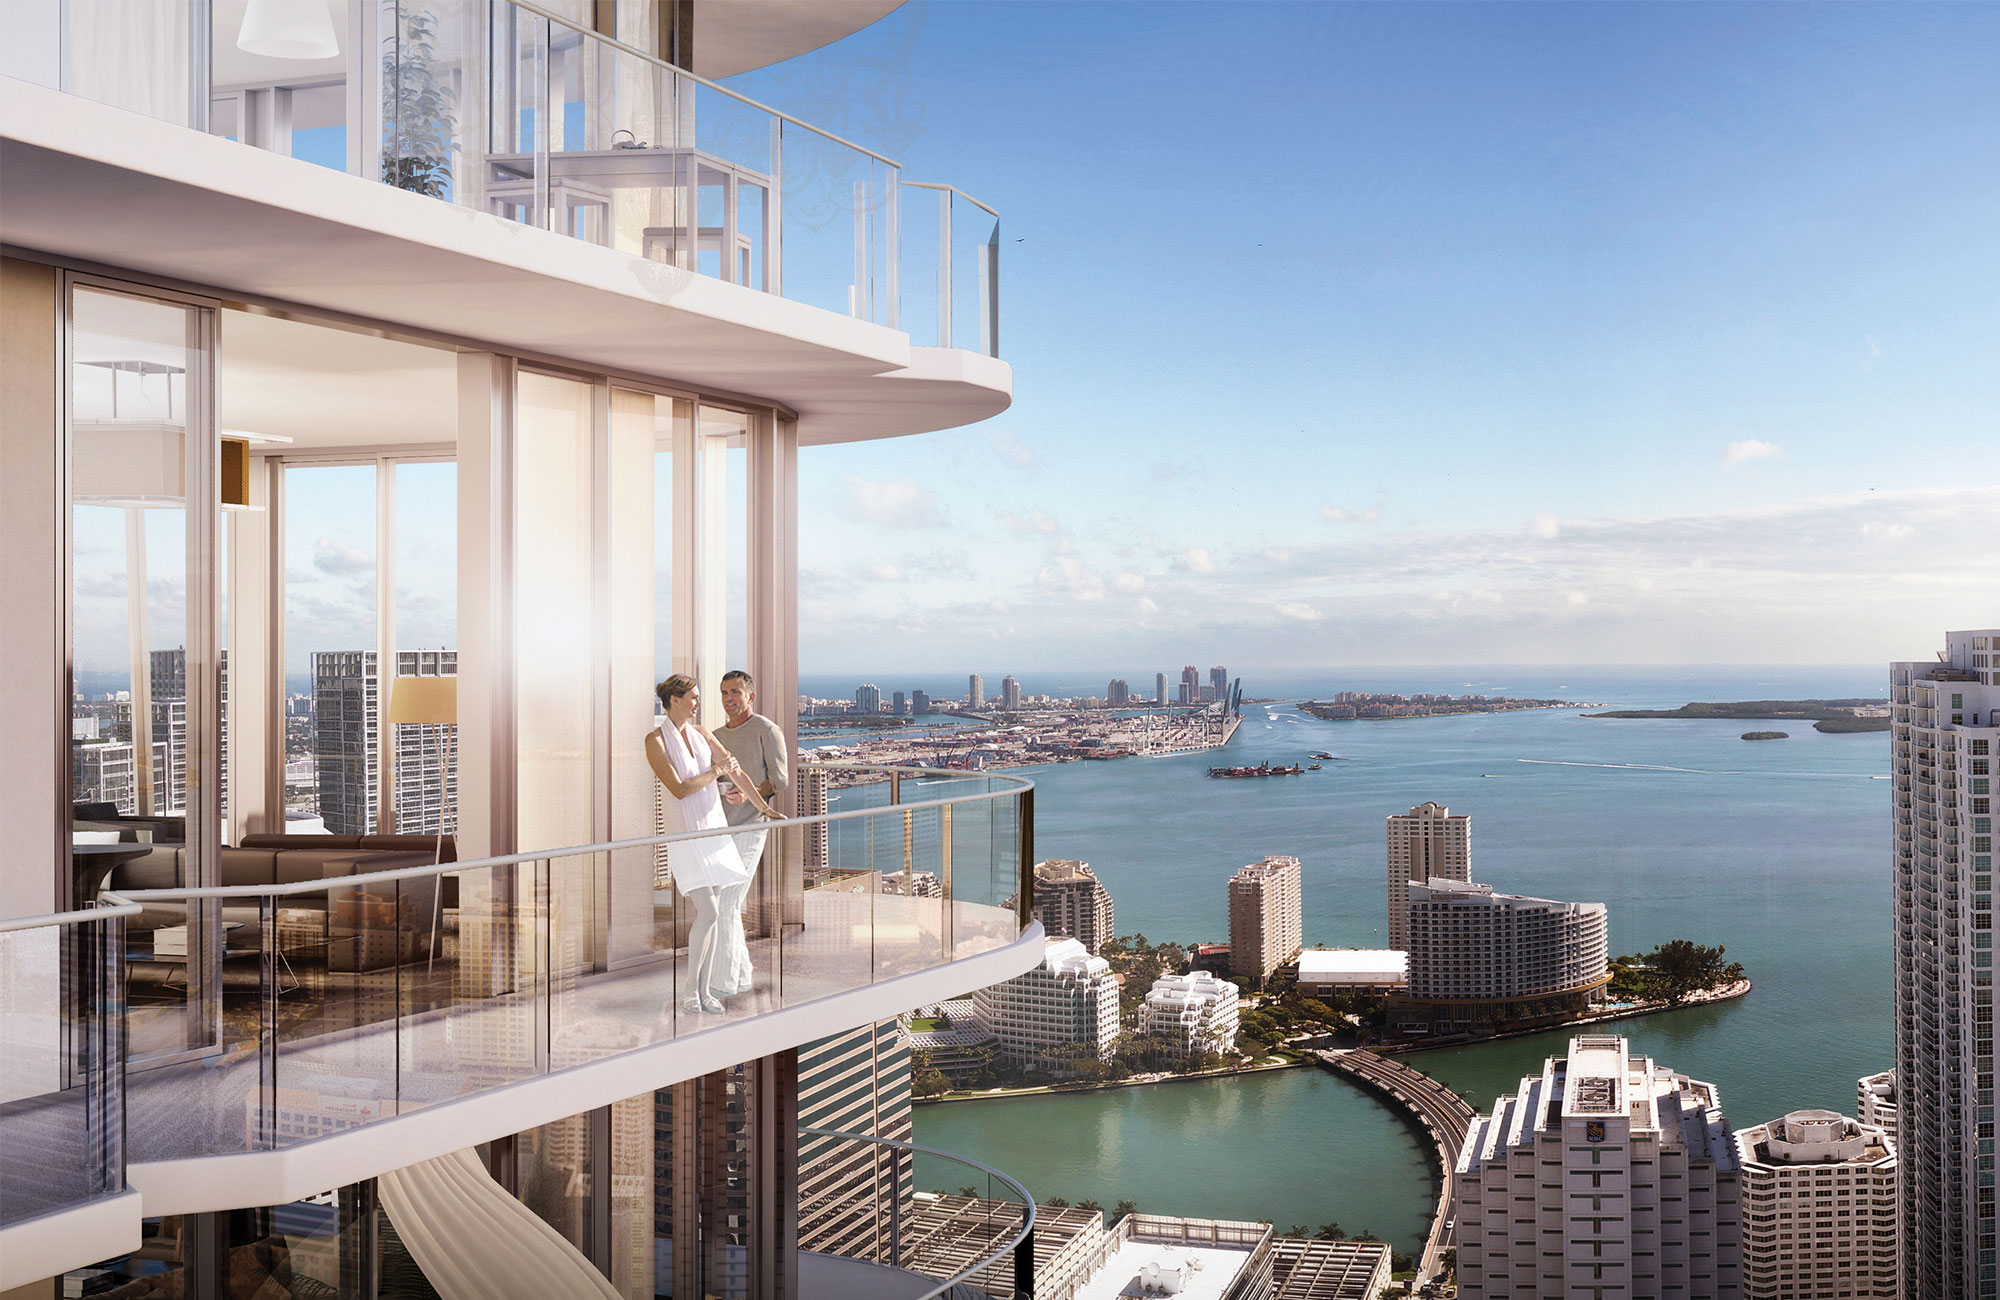 Related Group Pays Off $166 Million Construction Loan For SLS LUX Which Is Set To Open